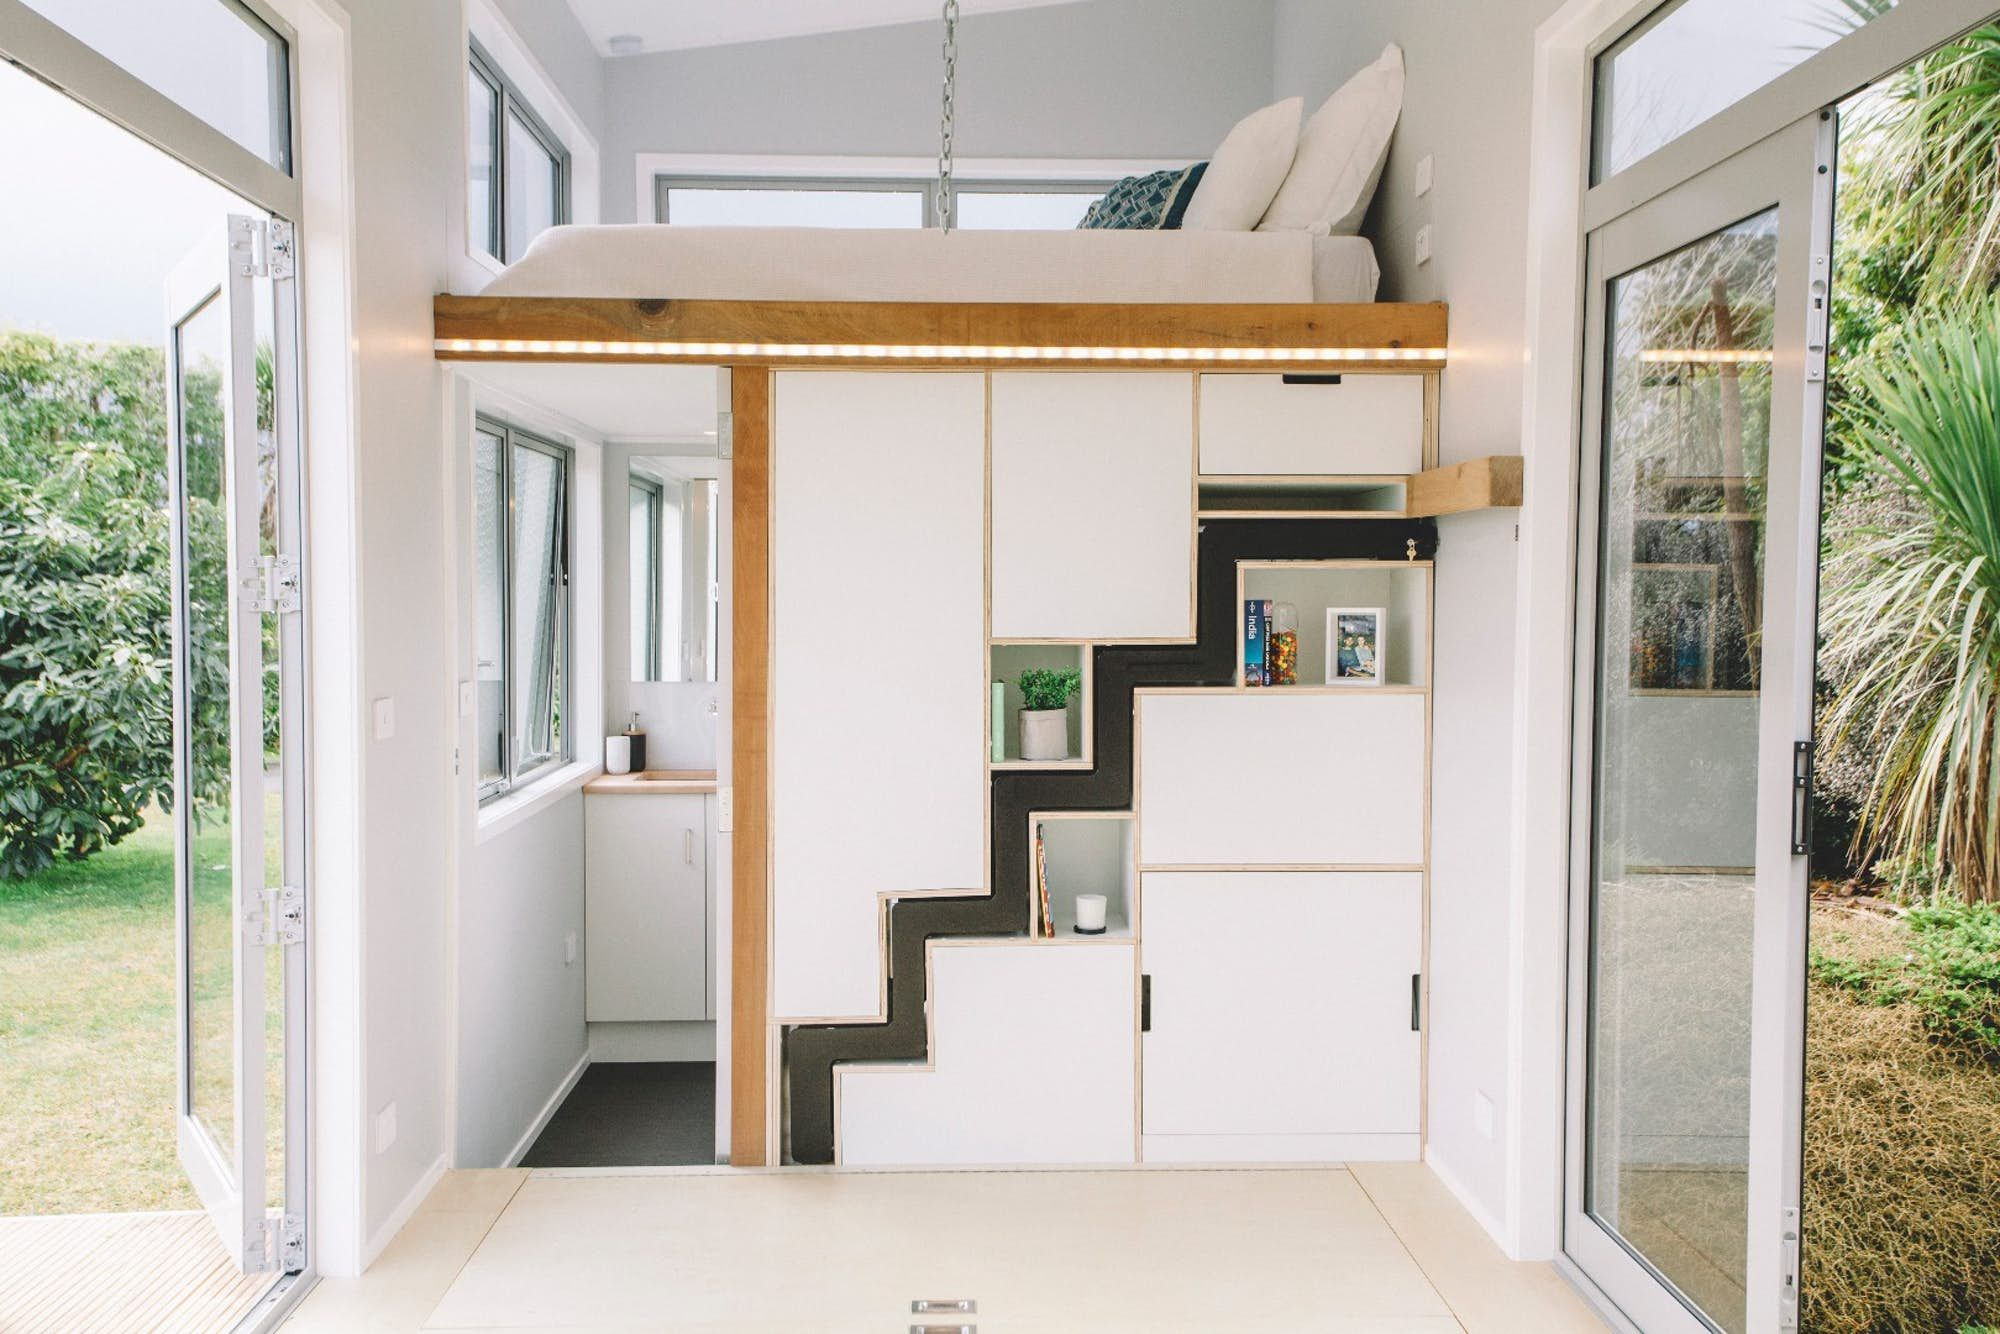 Millennial Tiny House is packed with space-saving ideas | Staircases ...